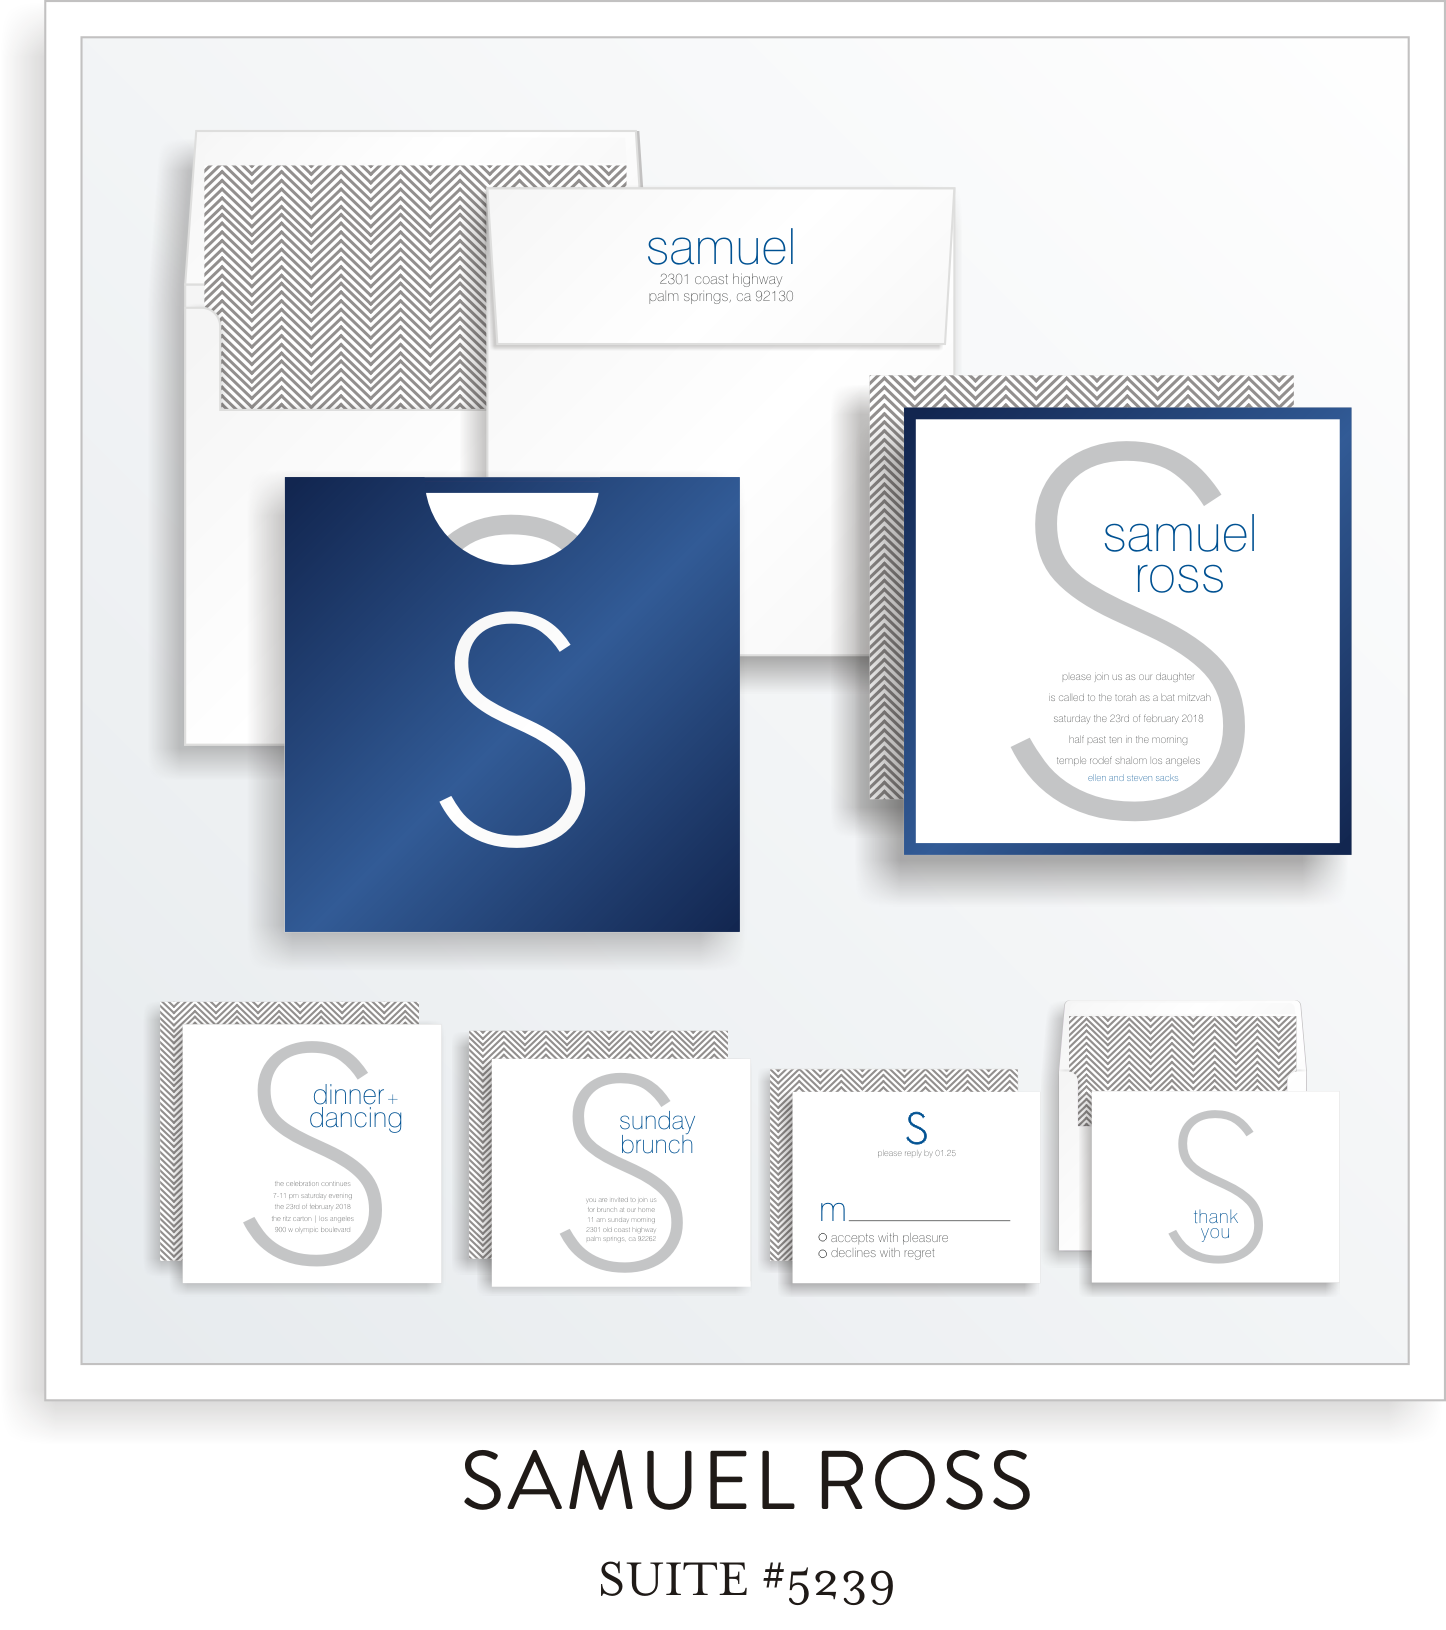 Copy of Copy of Bar Mitzvah Invitation Suite 5239 - Samuel Ross